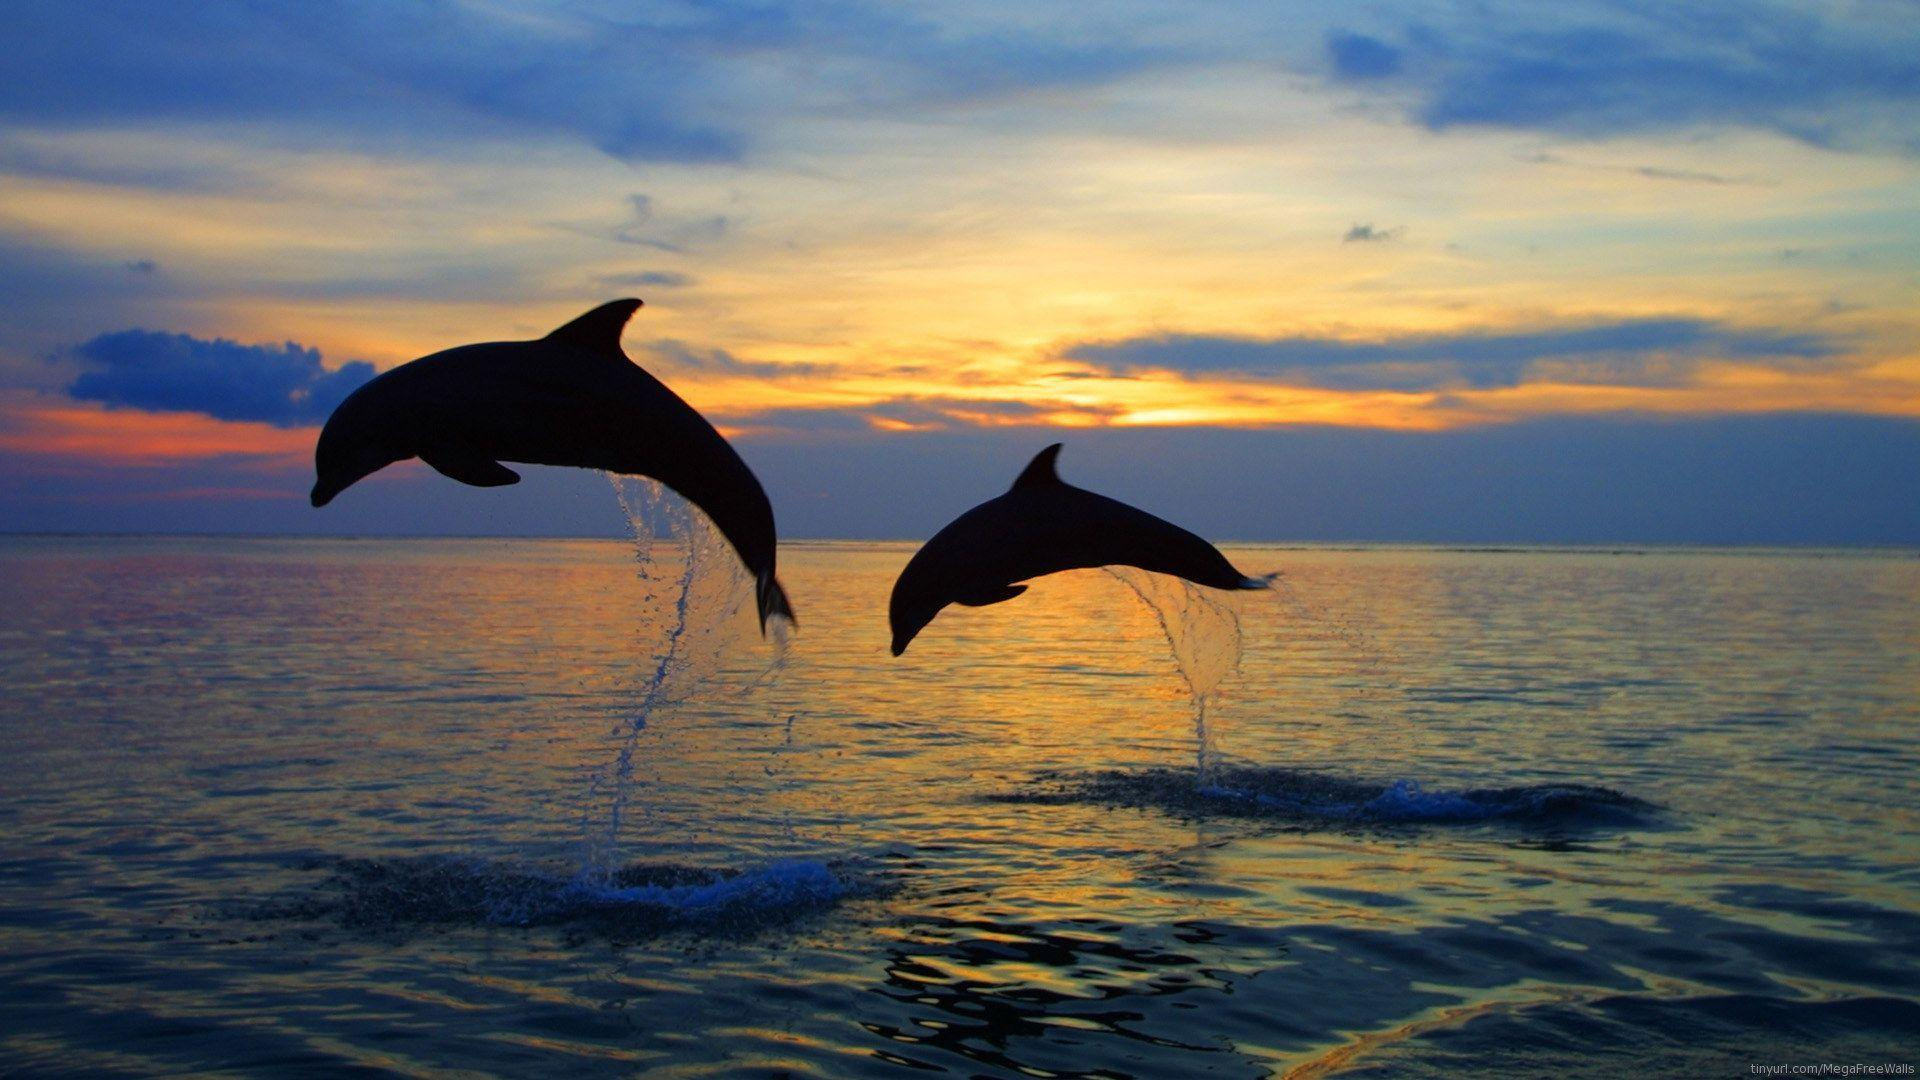 Dolphin Wallpaper 1 For Background HD | wallpaperhd77.com